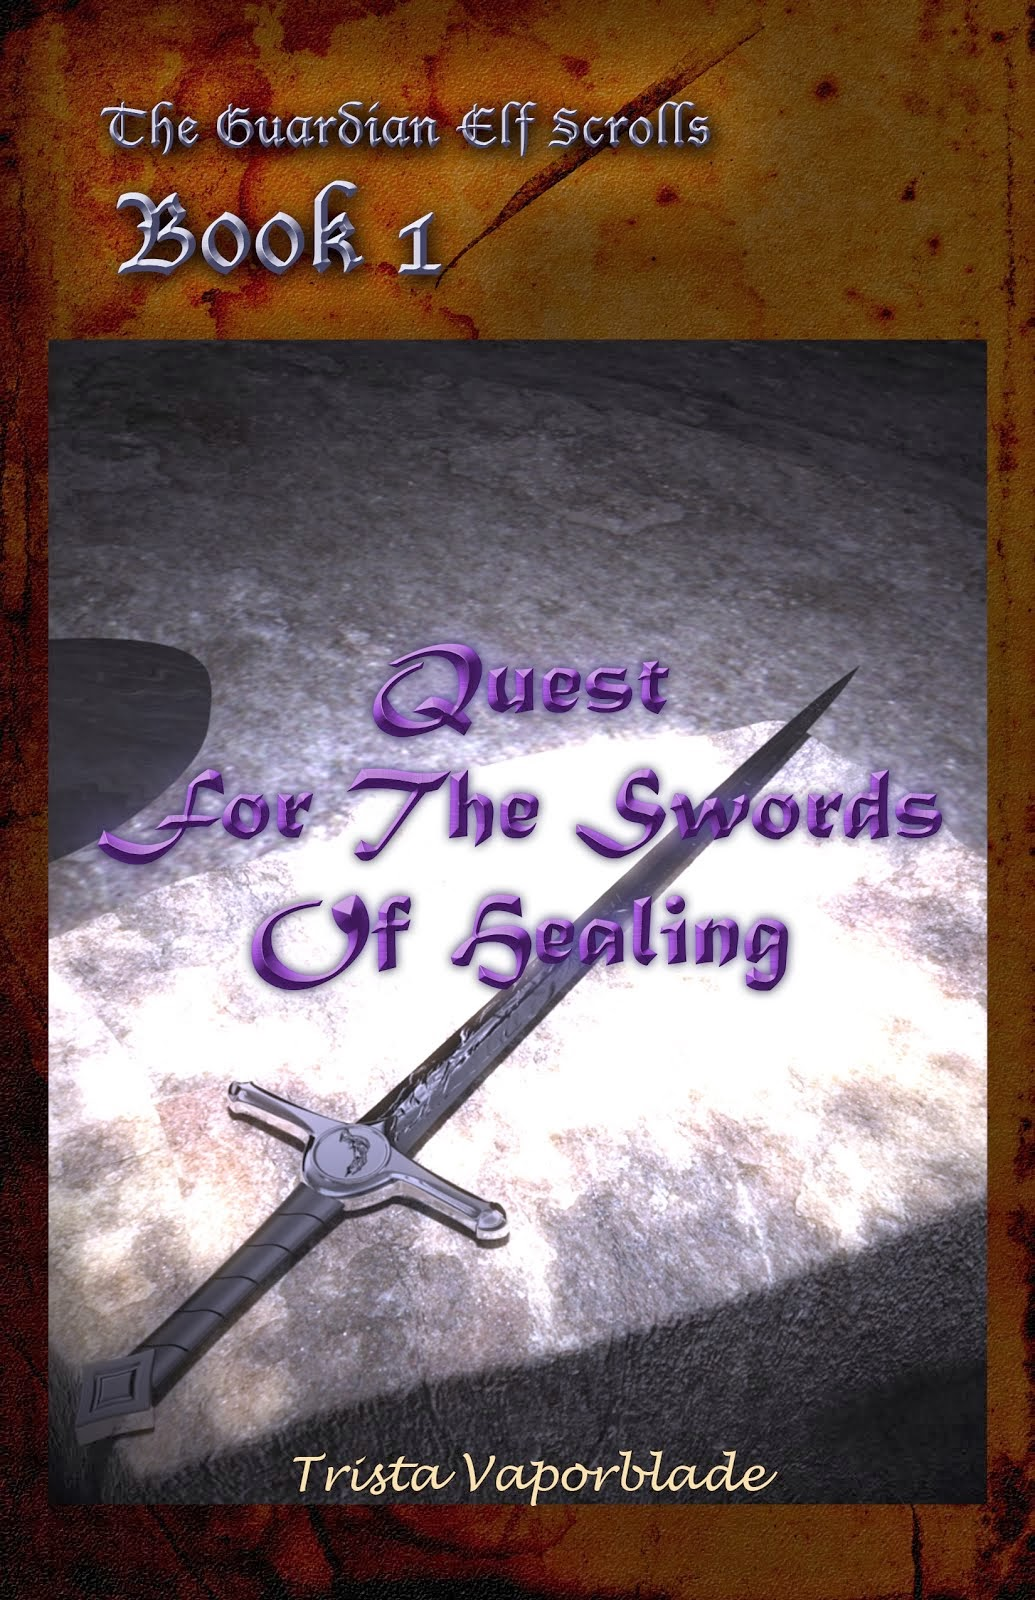 Quest for the Swords of Healing